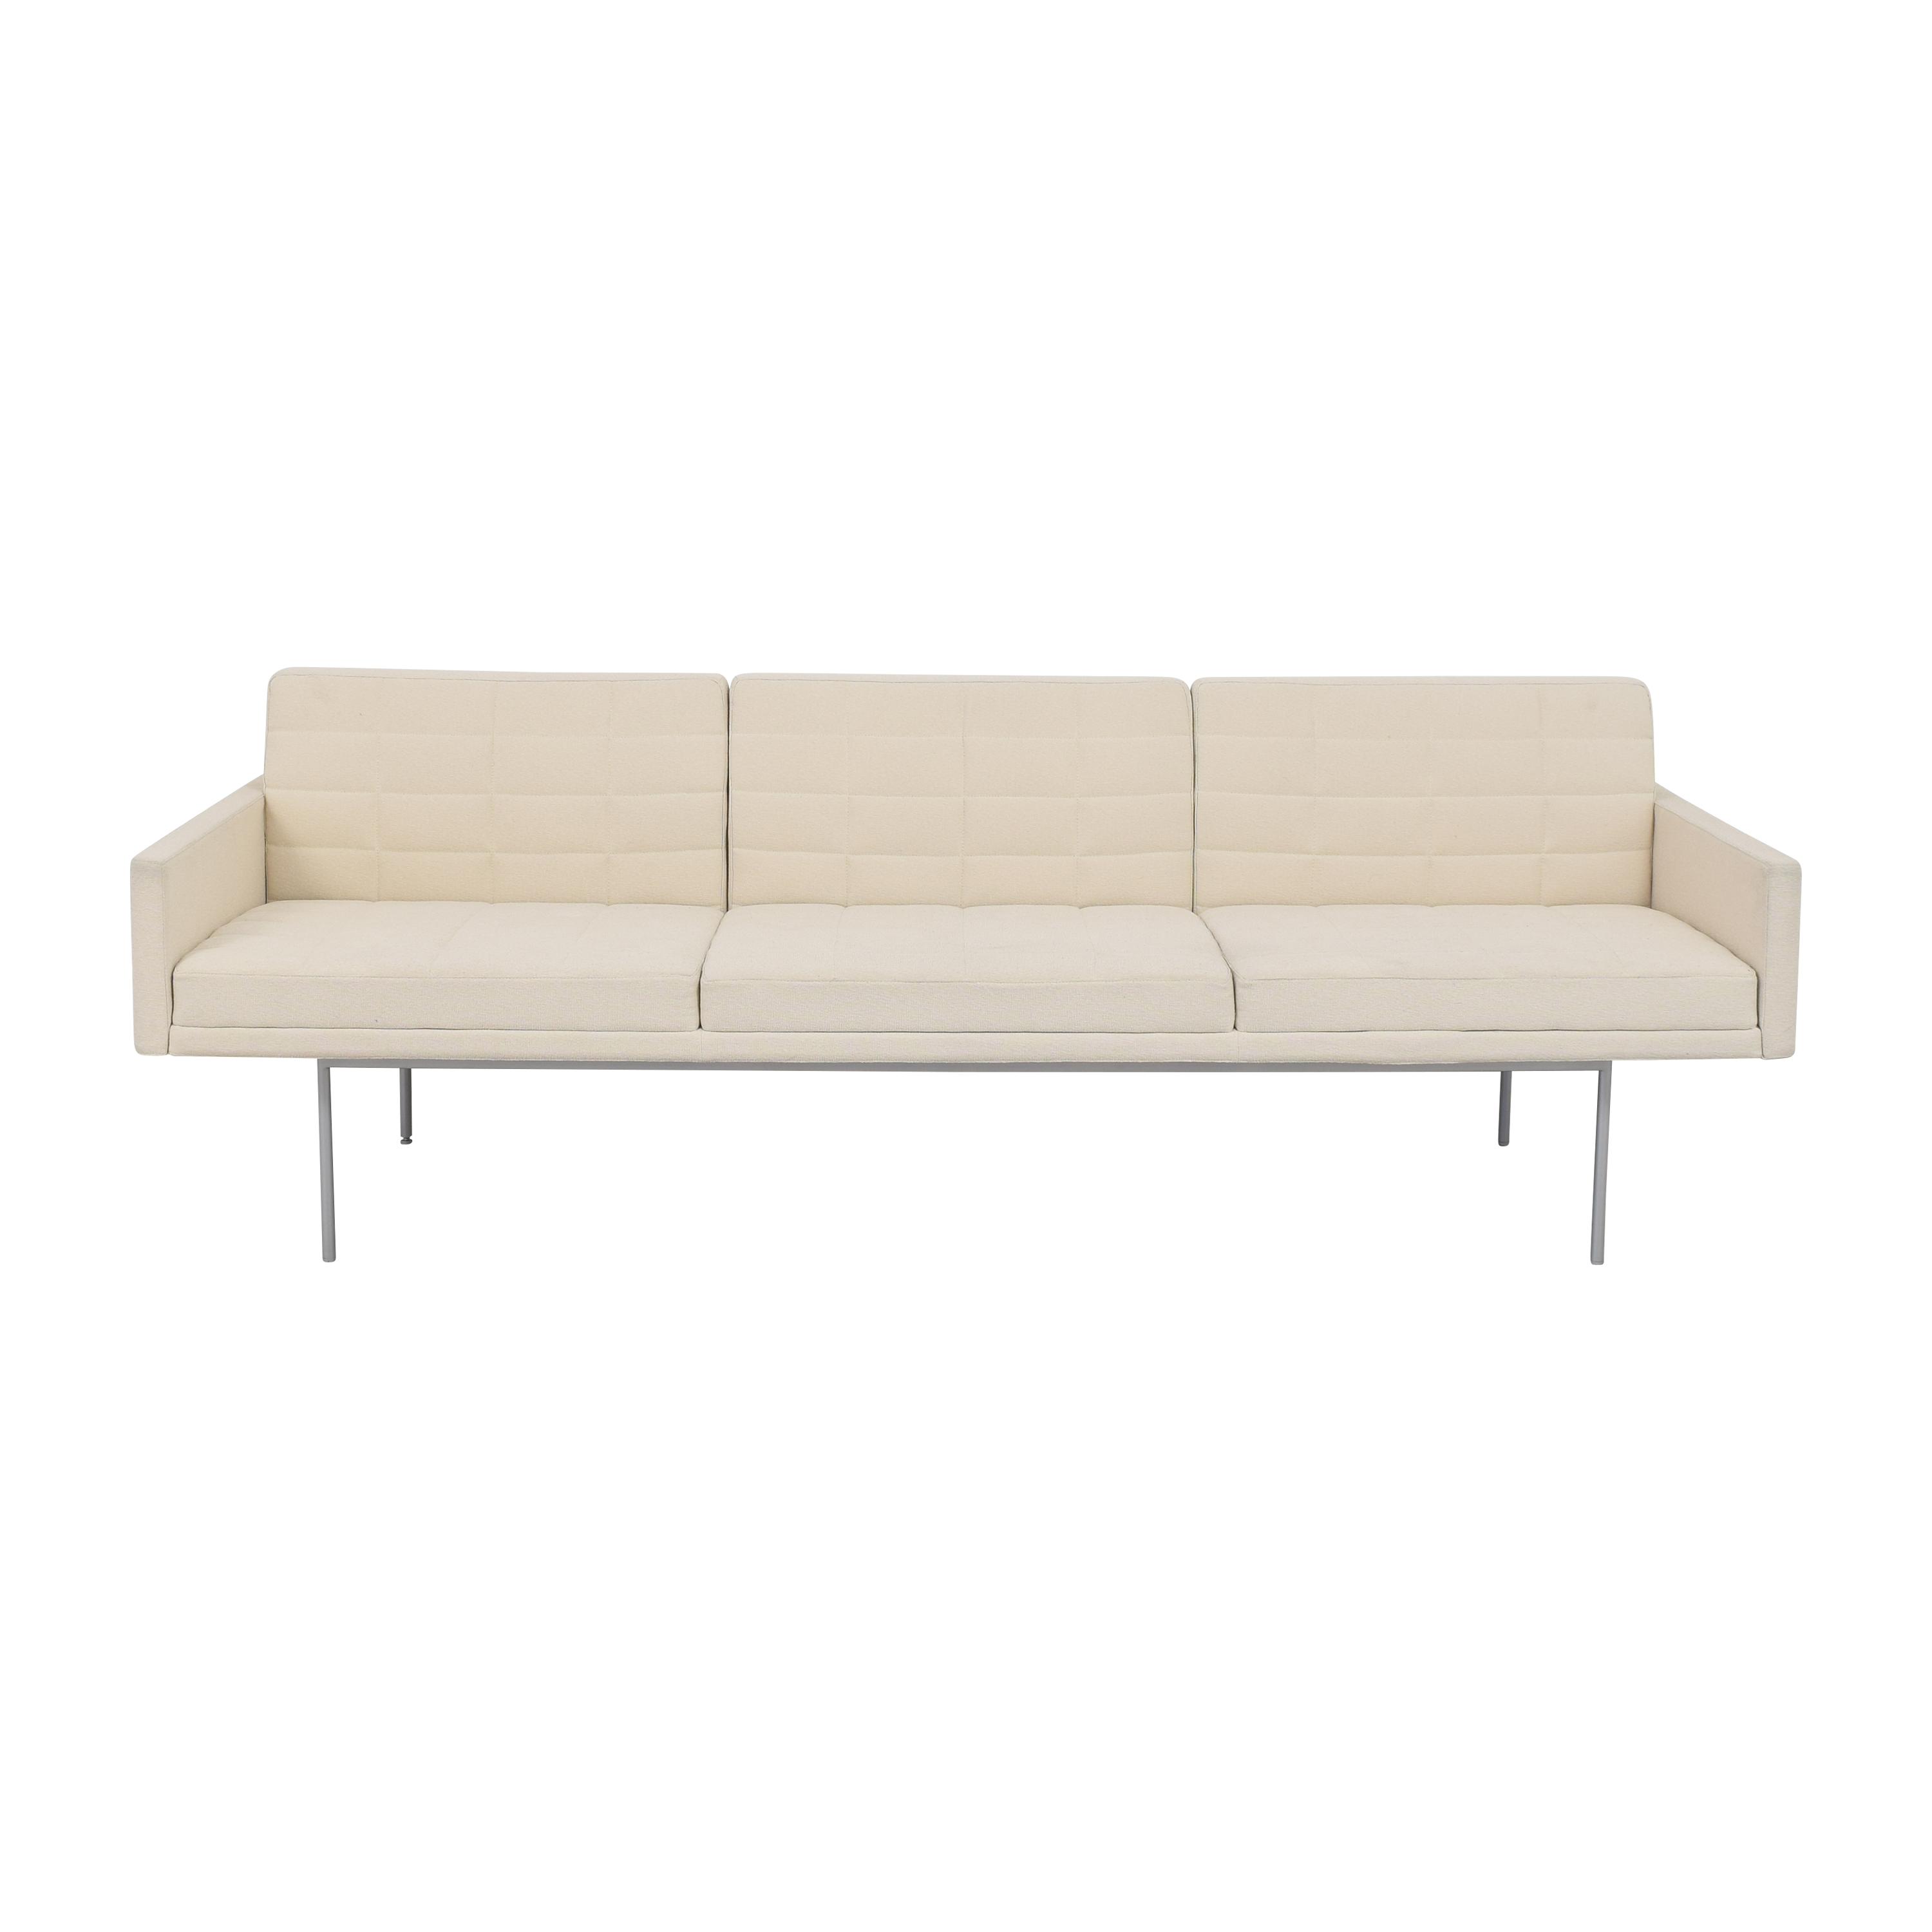 buy Design Within Reach Tuxedo Sofa Design Within Reach